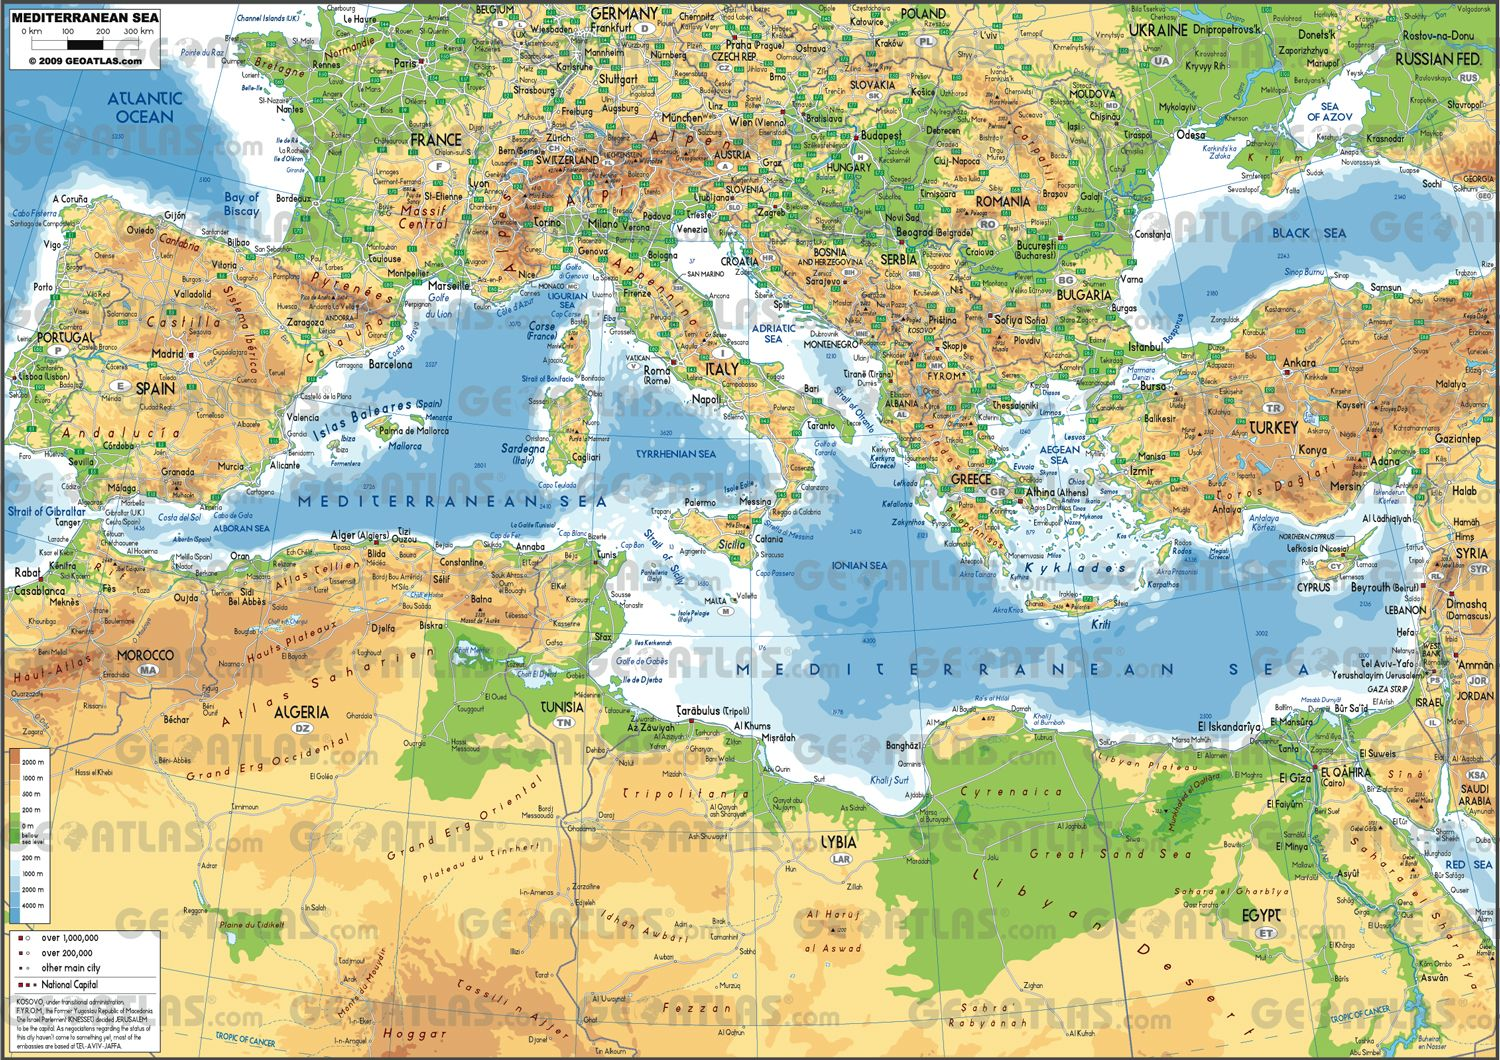 World map of Meditterian how and when Mediterranean Sea